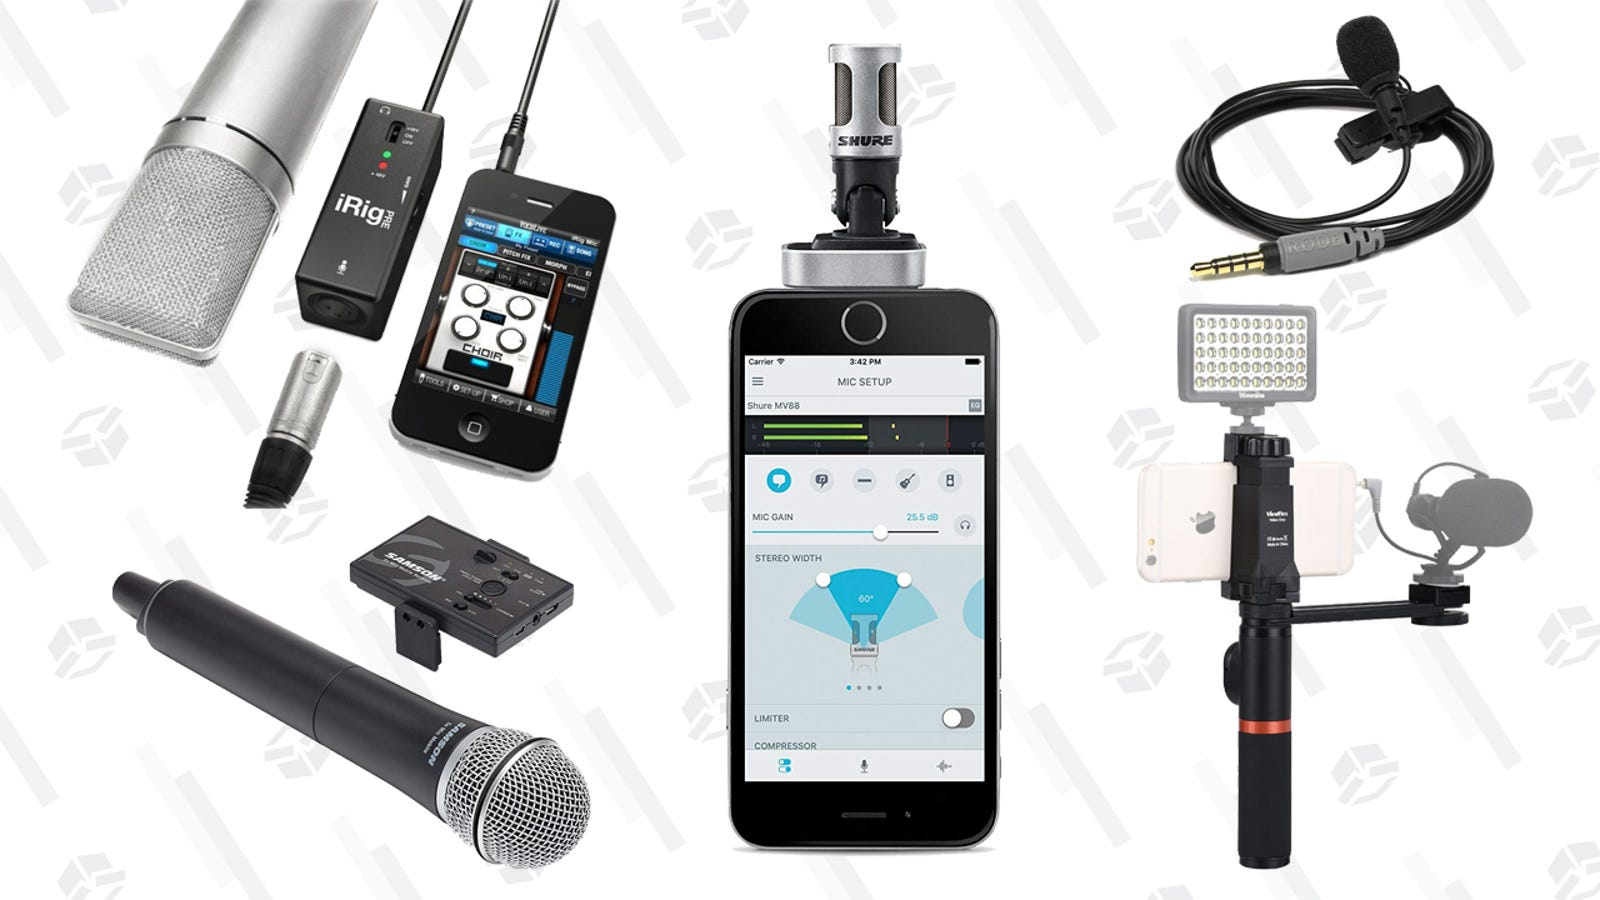 Get Better Audio Out of Your Smartphone With This Mobile Sound Gear